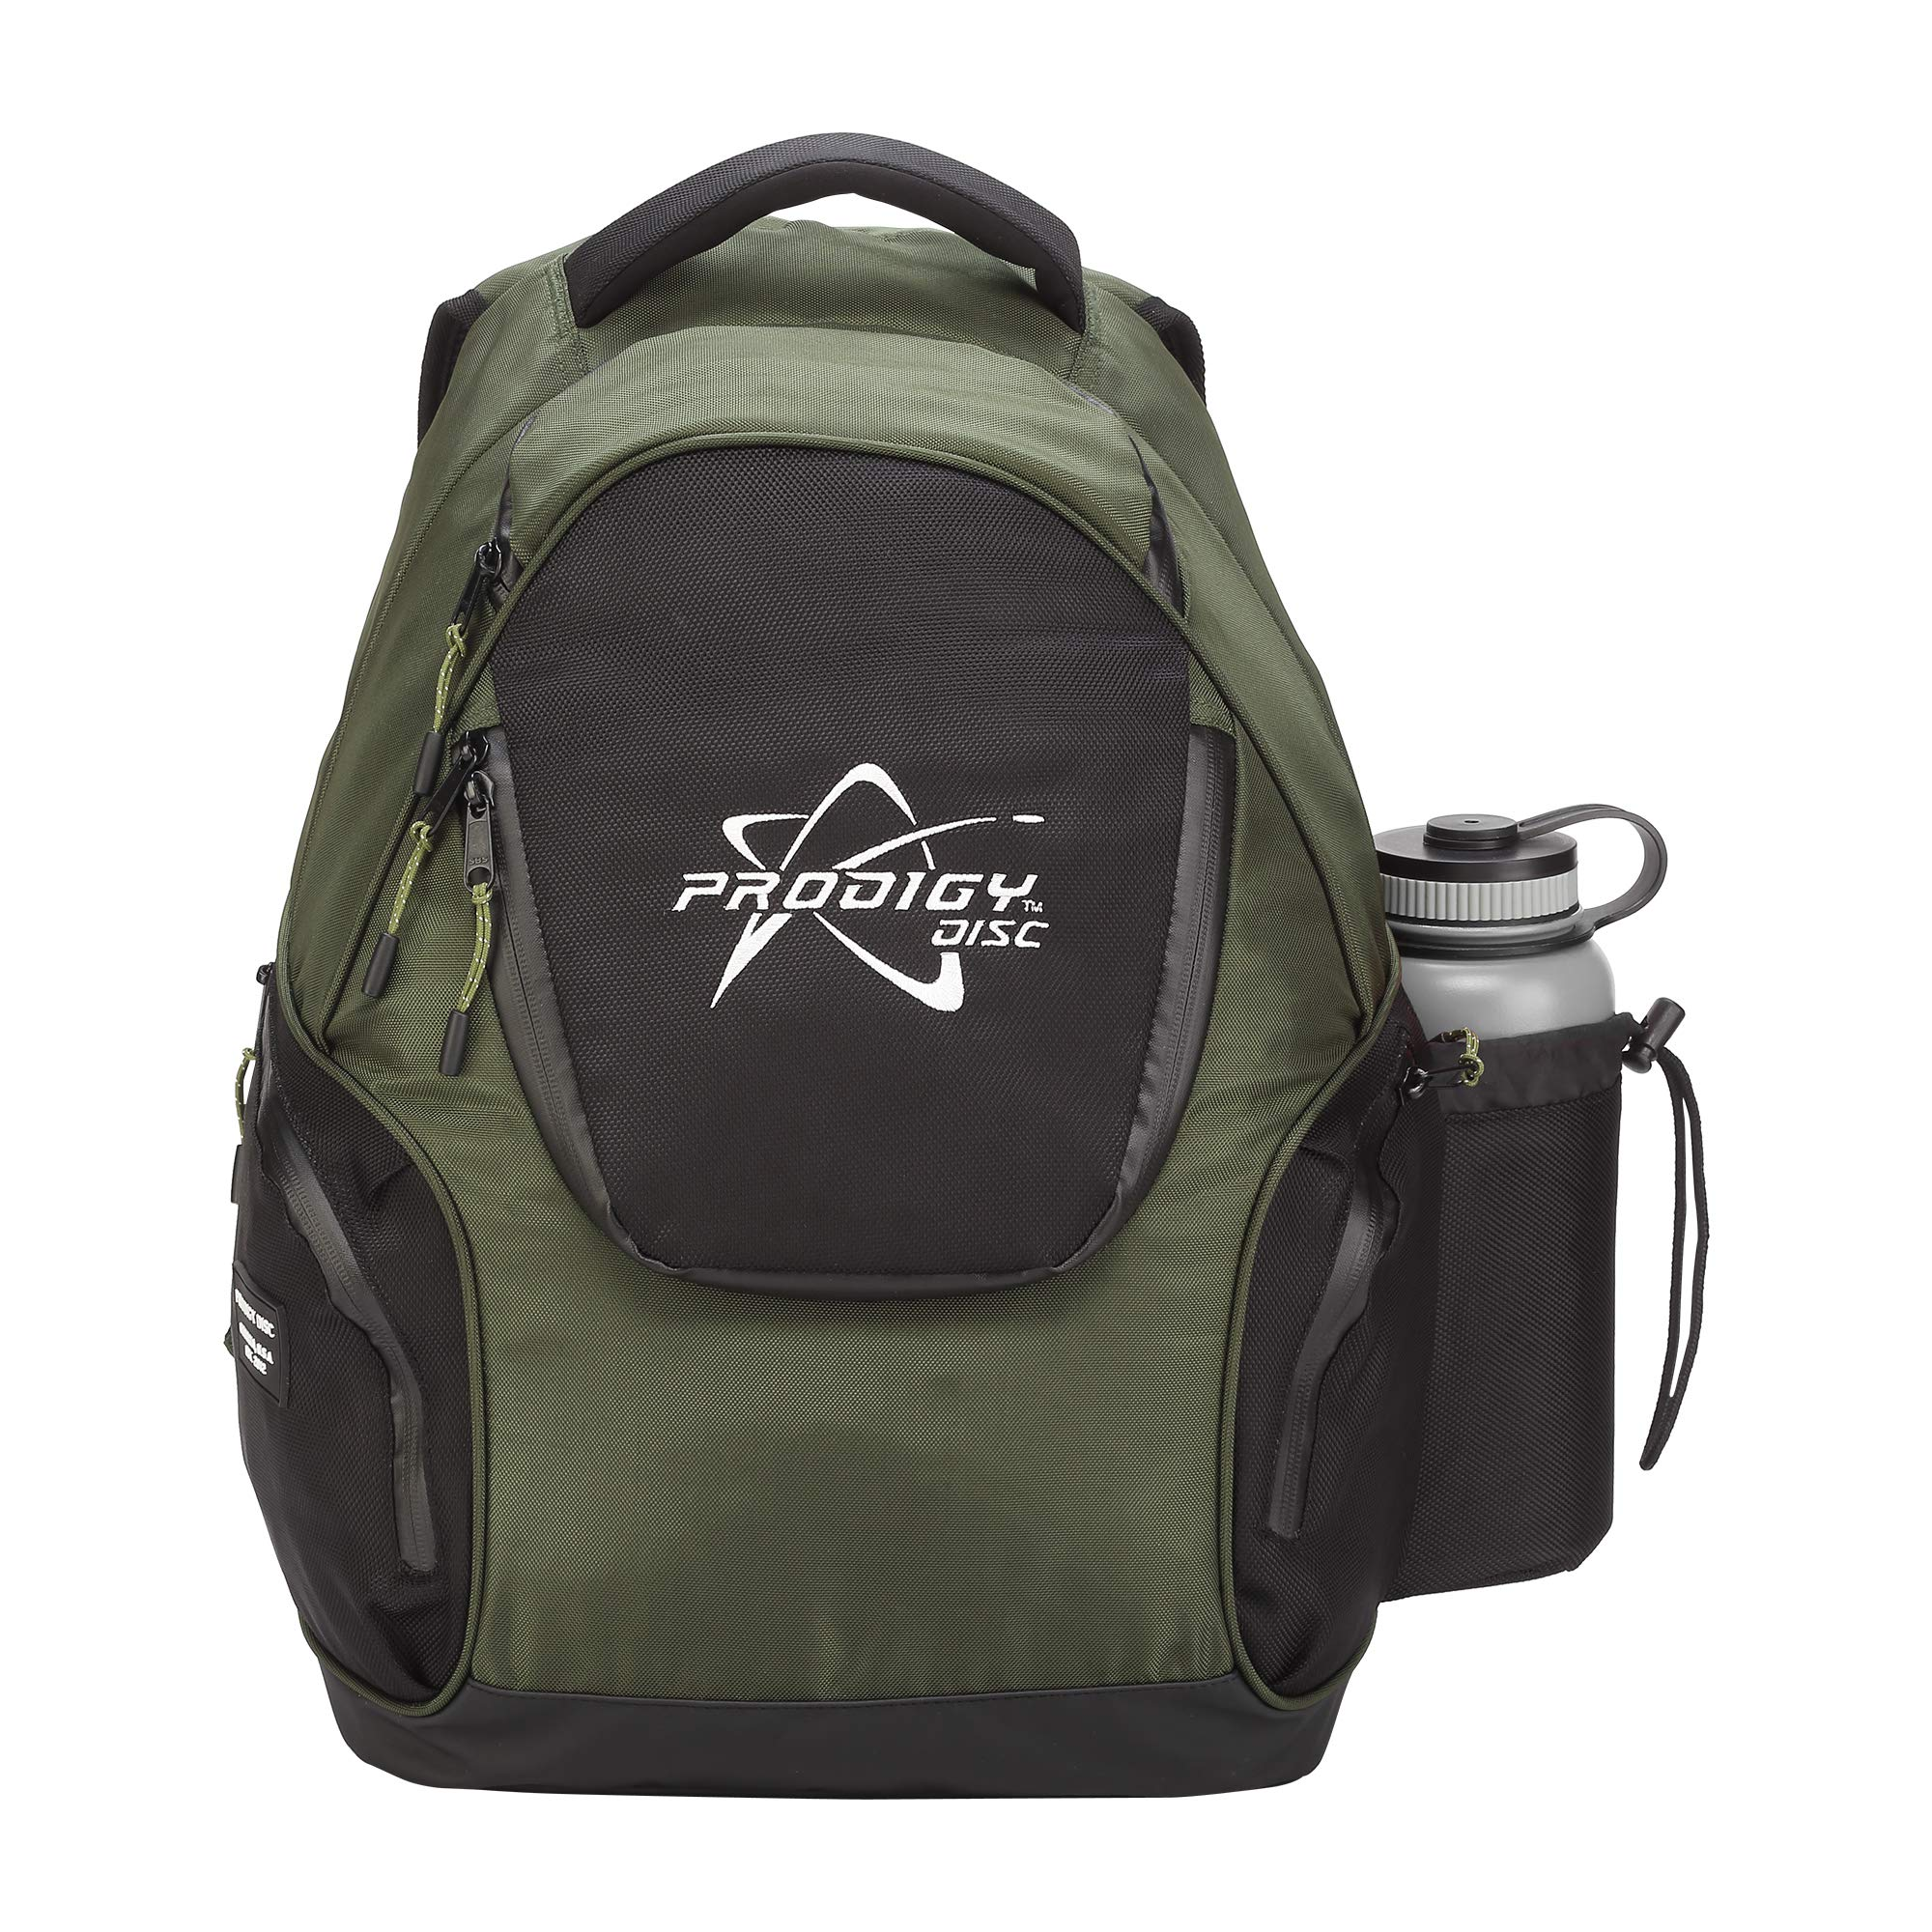 Prodigy Disc BP-3 V2 Disc Golf Backpack - Fits 17 Discs - Beginner Friendly, Affordable (Green/Black) by Prodigy Disc (Image #4)